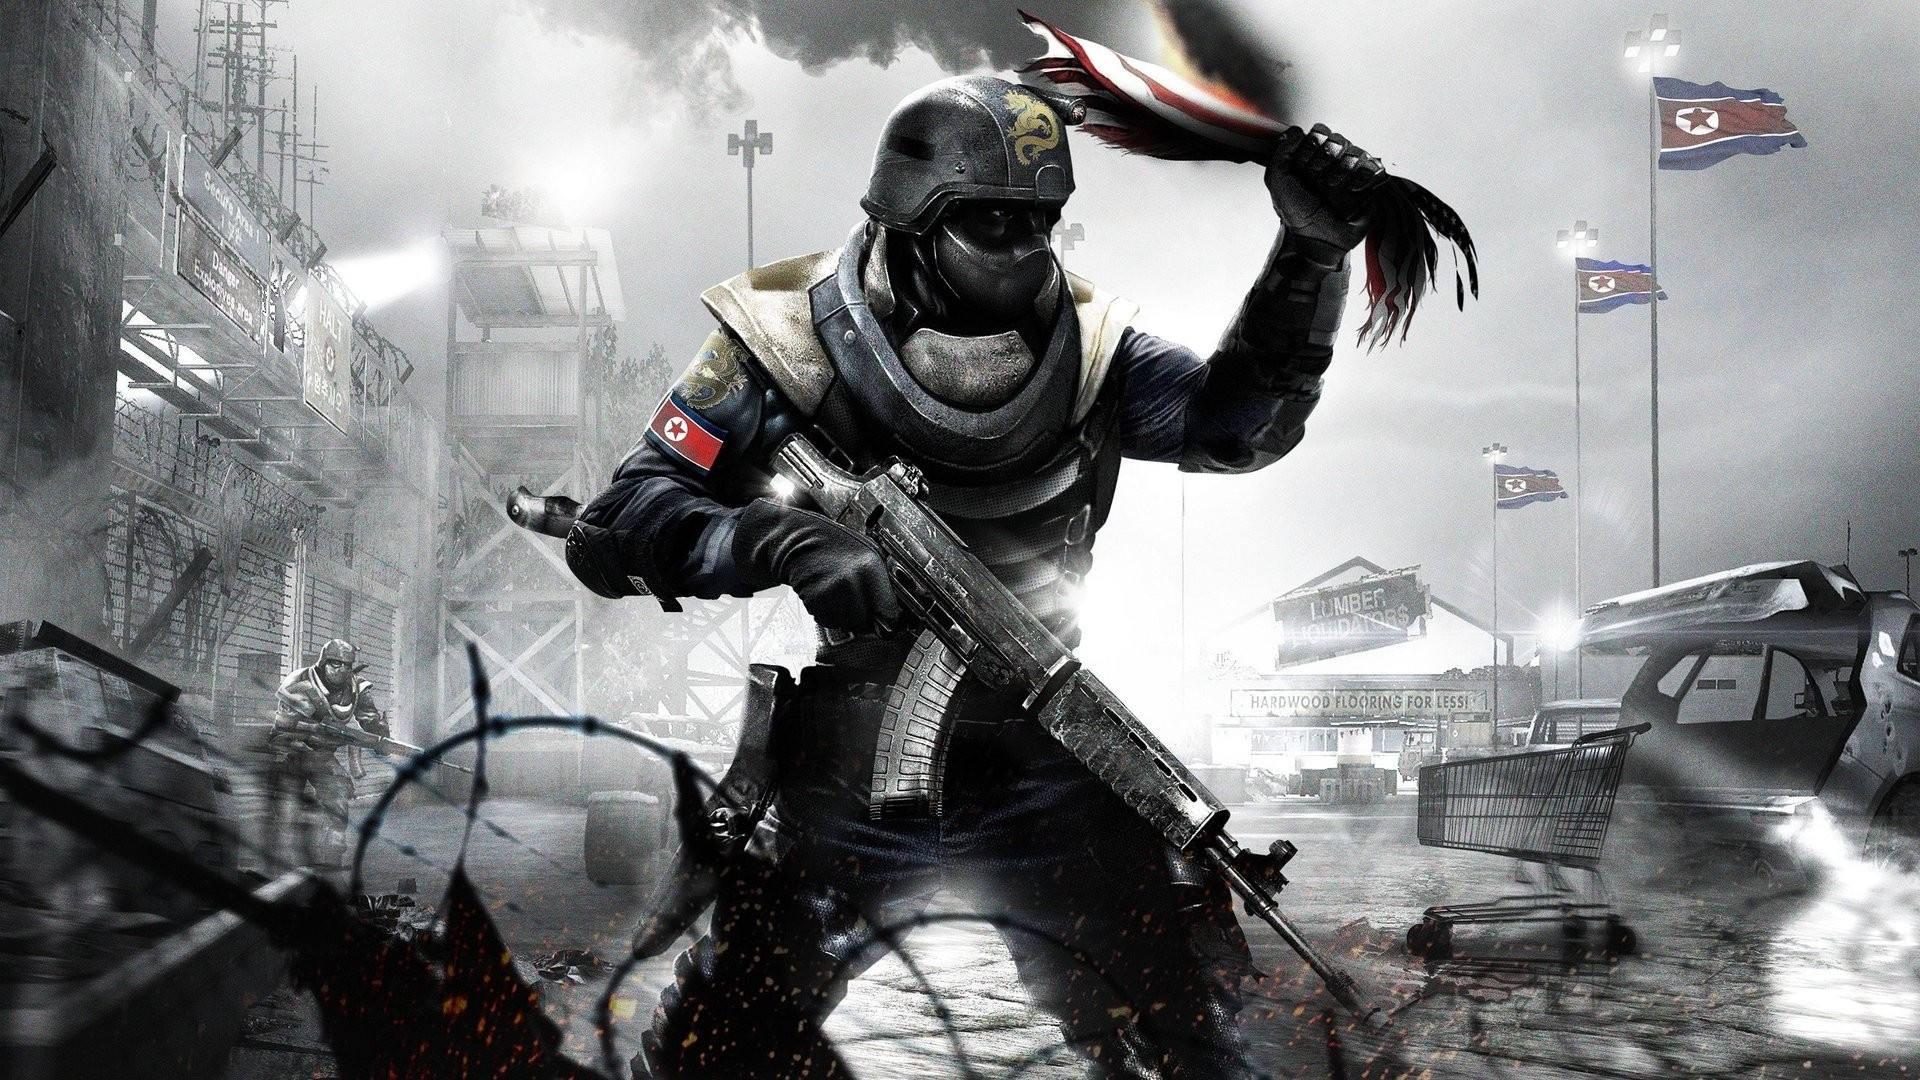 soldiers video games north HD Wallpaper